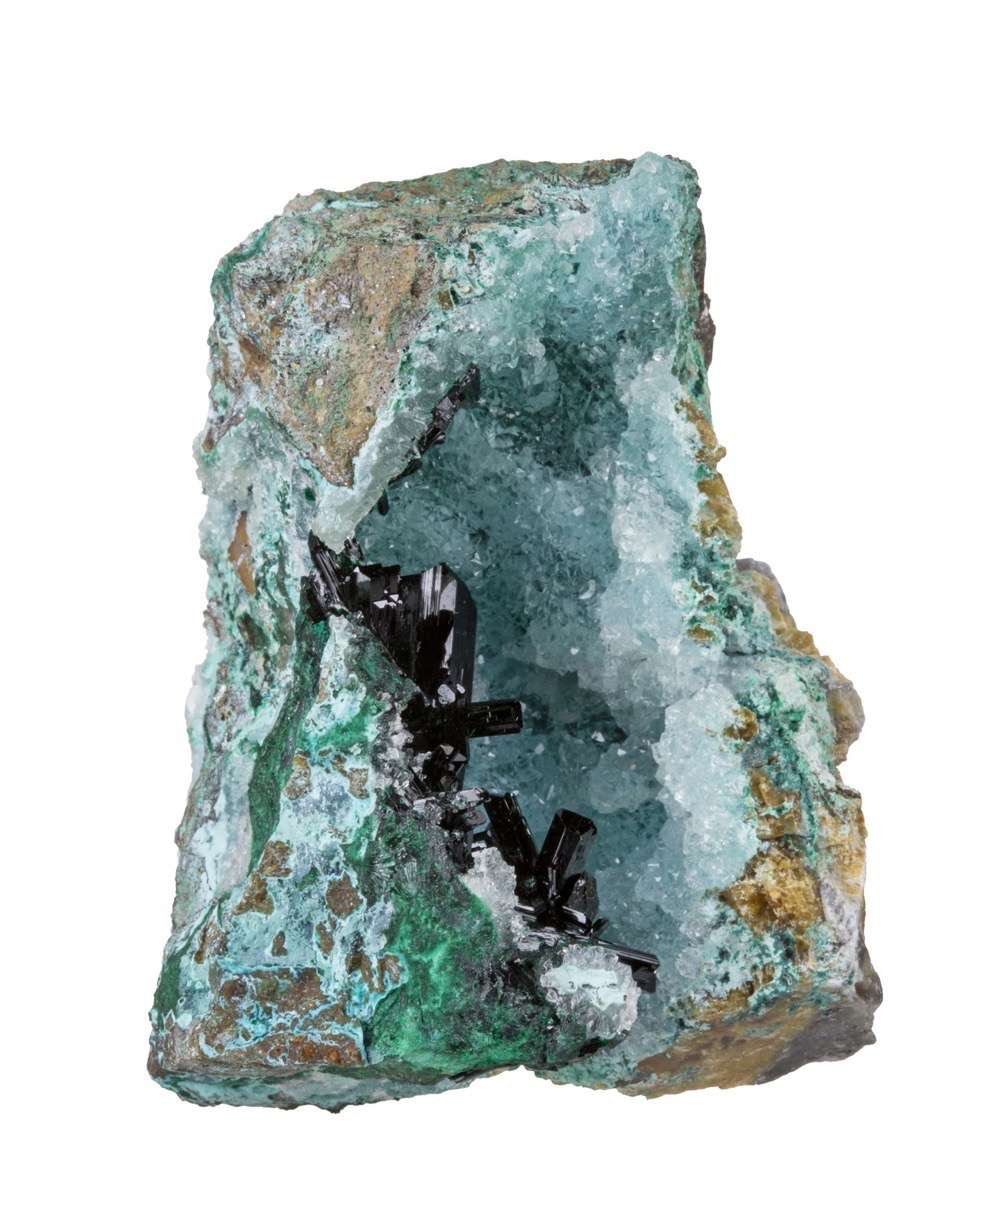 Nestled aesthetically drusy quartz vug infused minor chrysocolla color